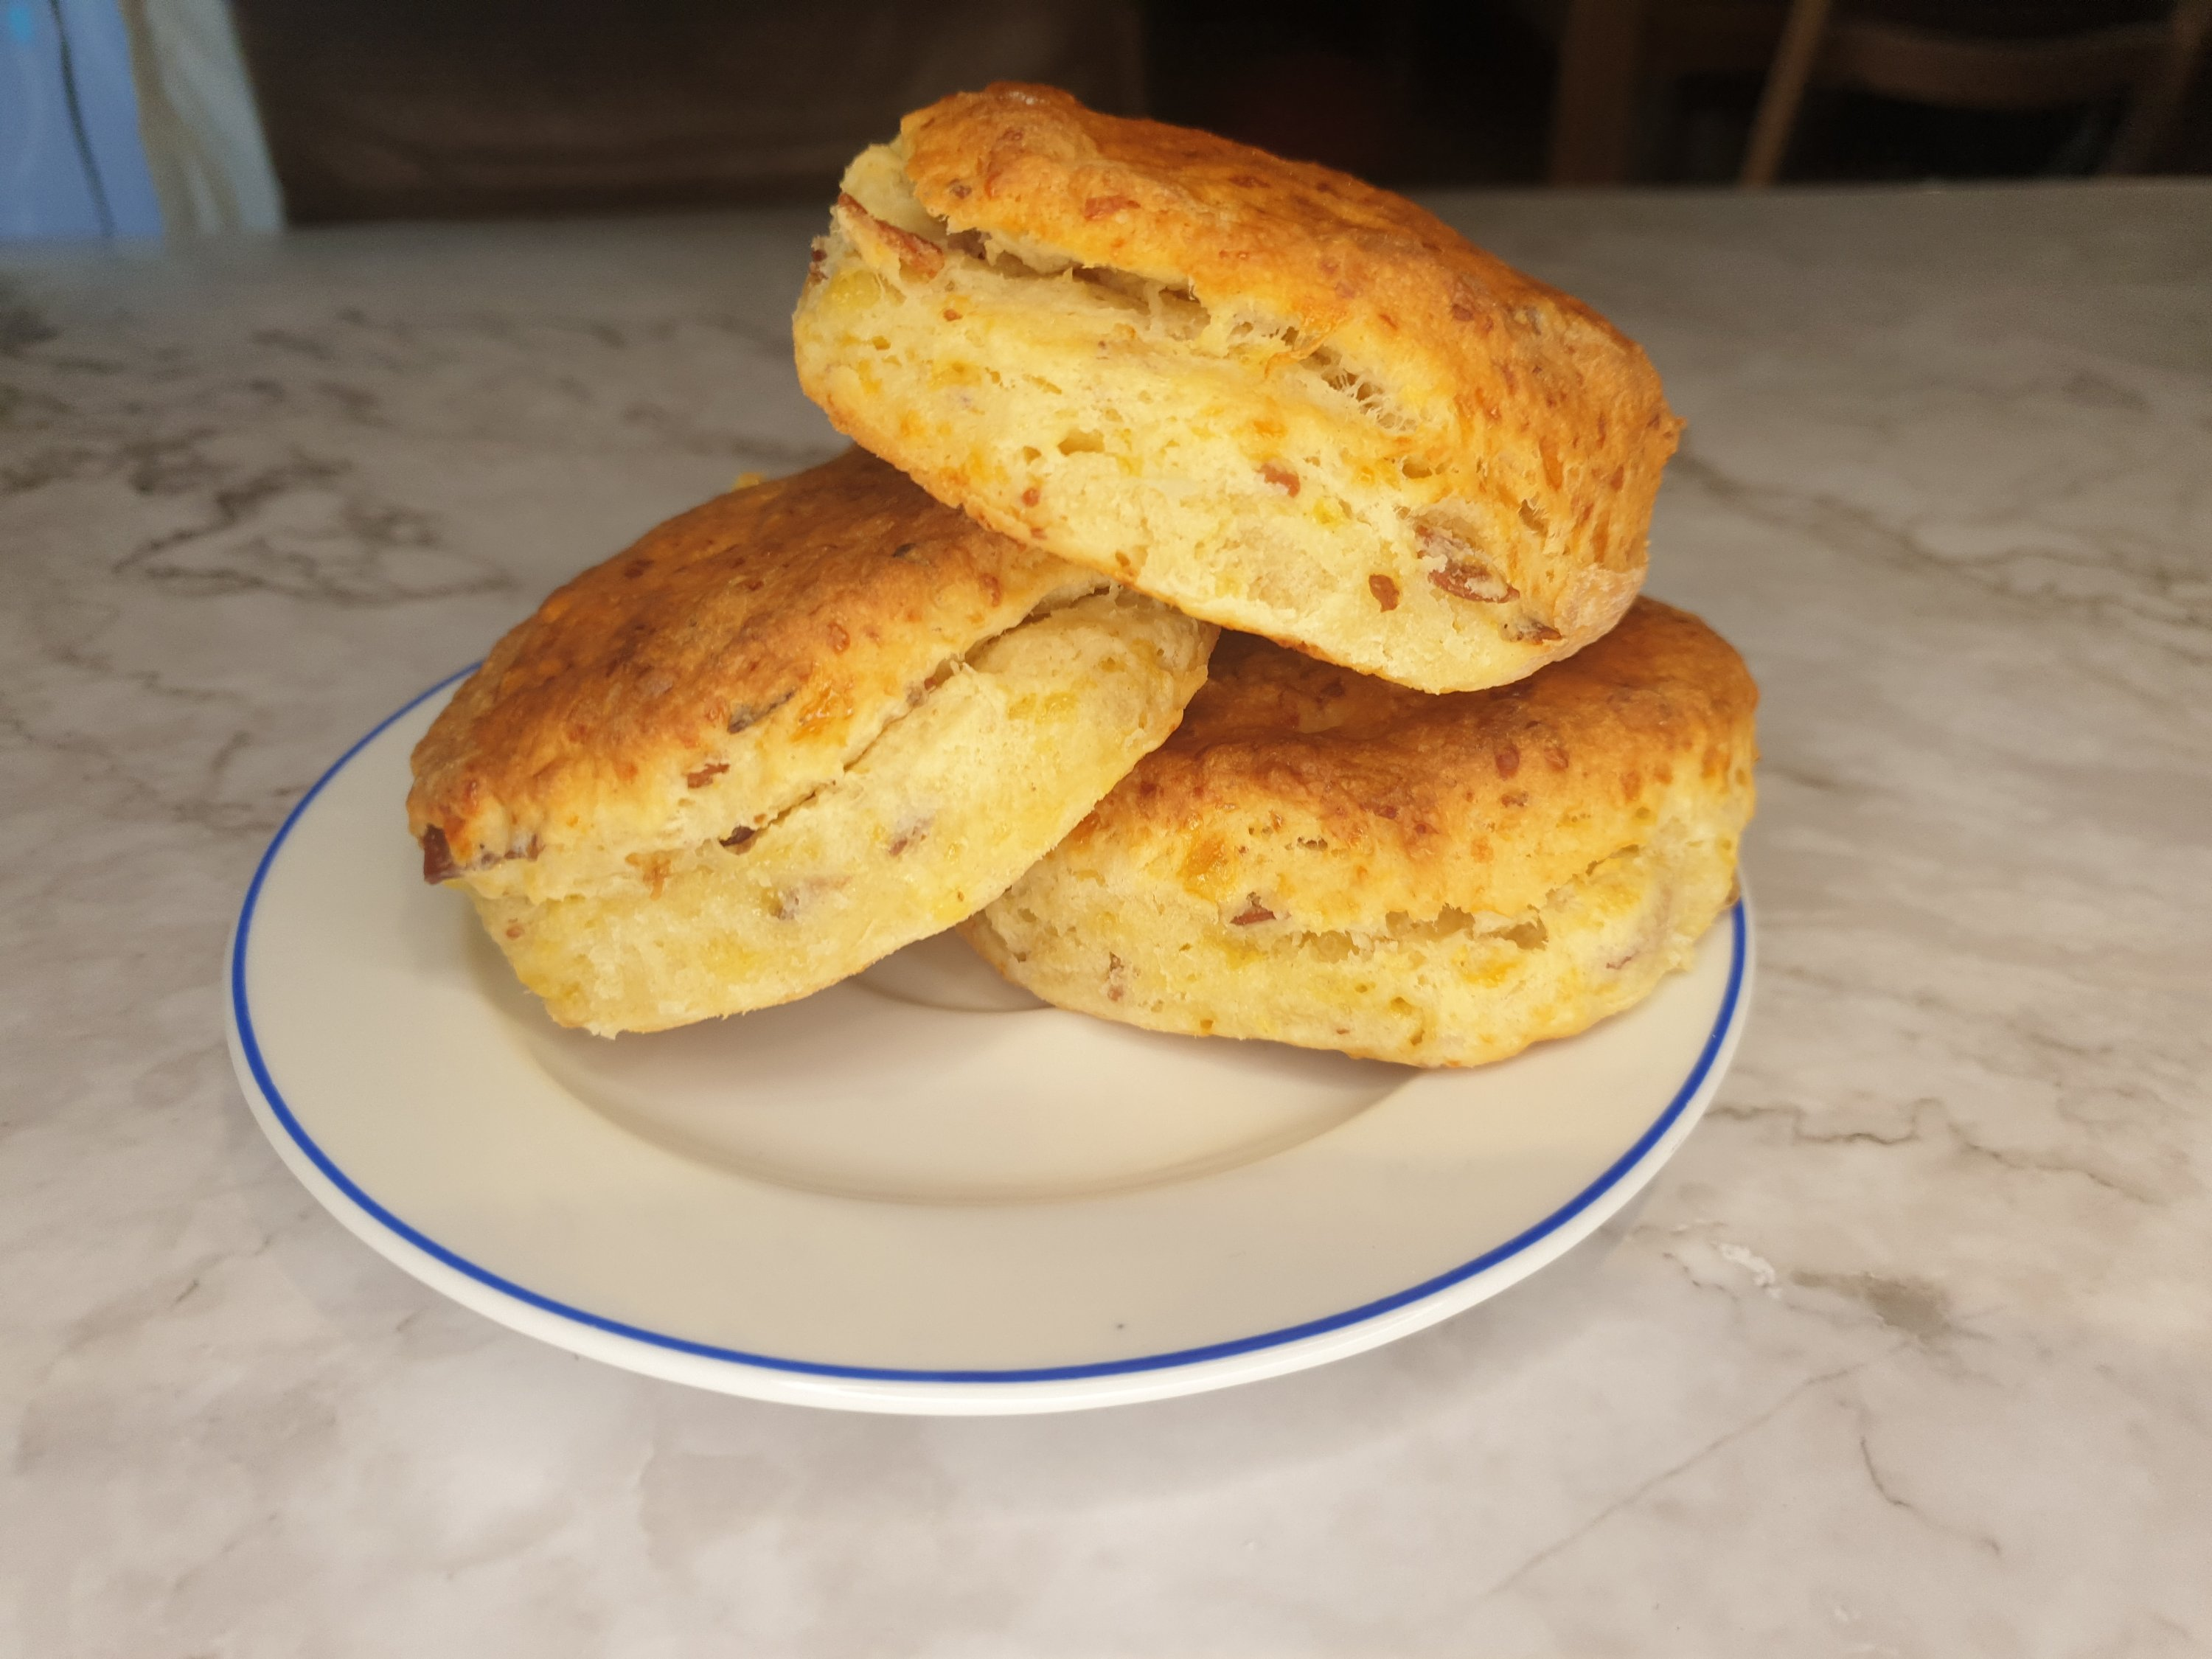 Southern biscuits with cheddar and bacon